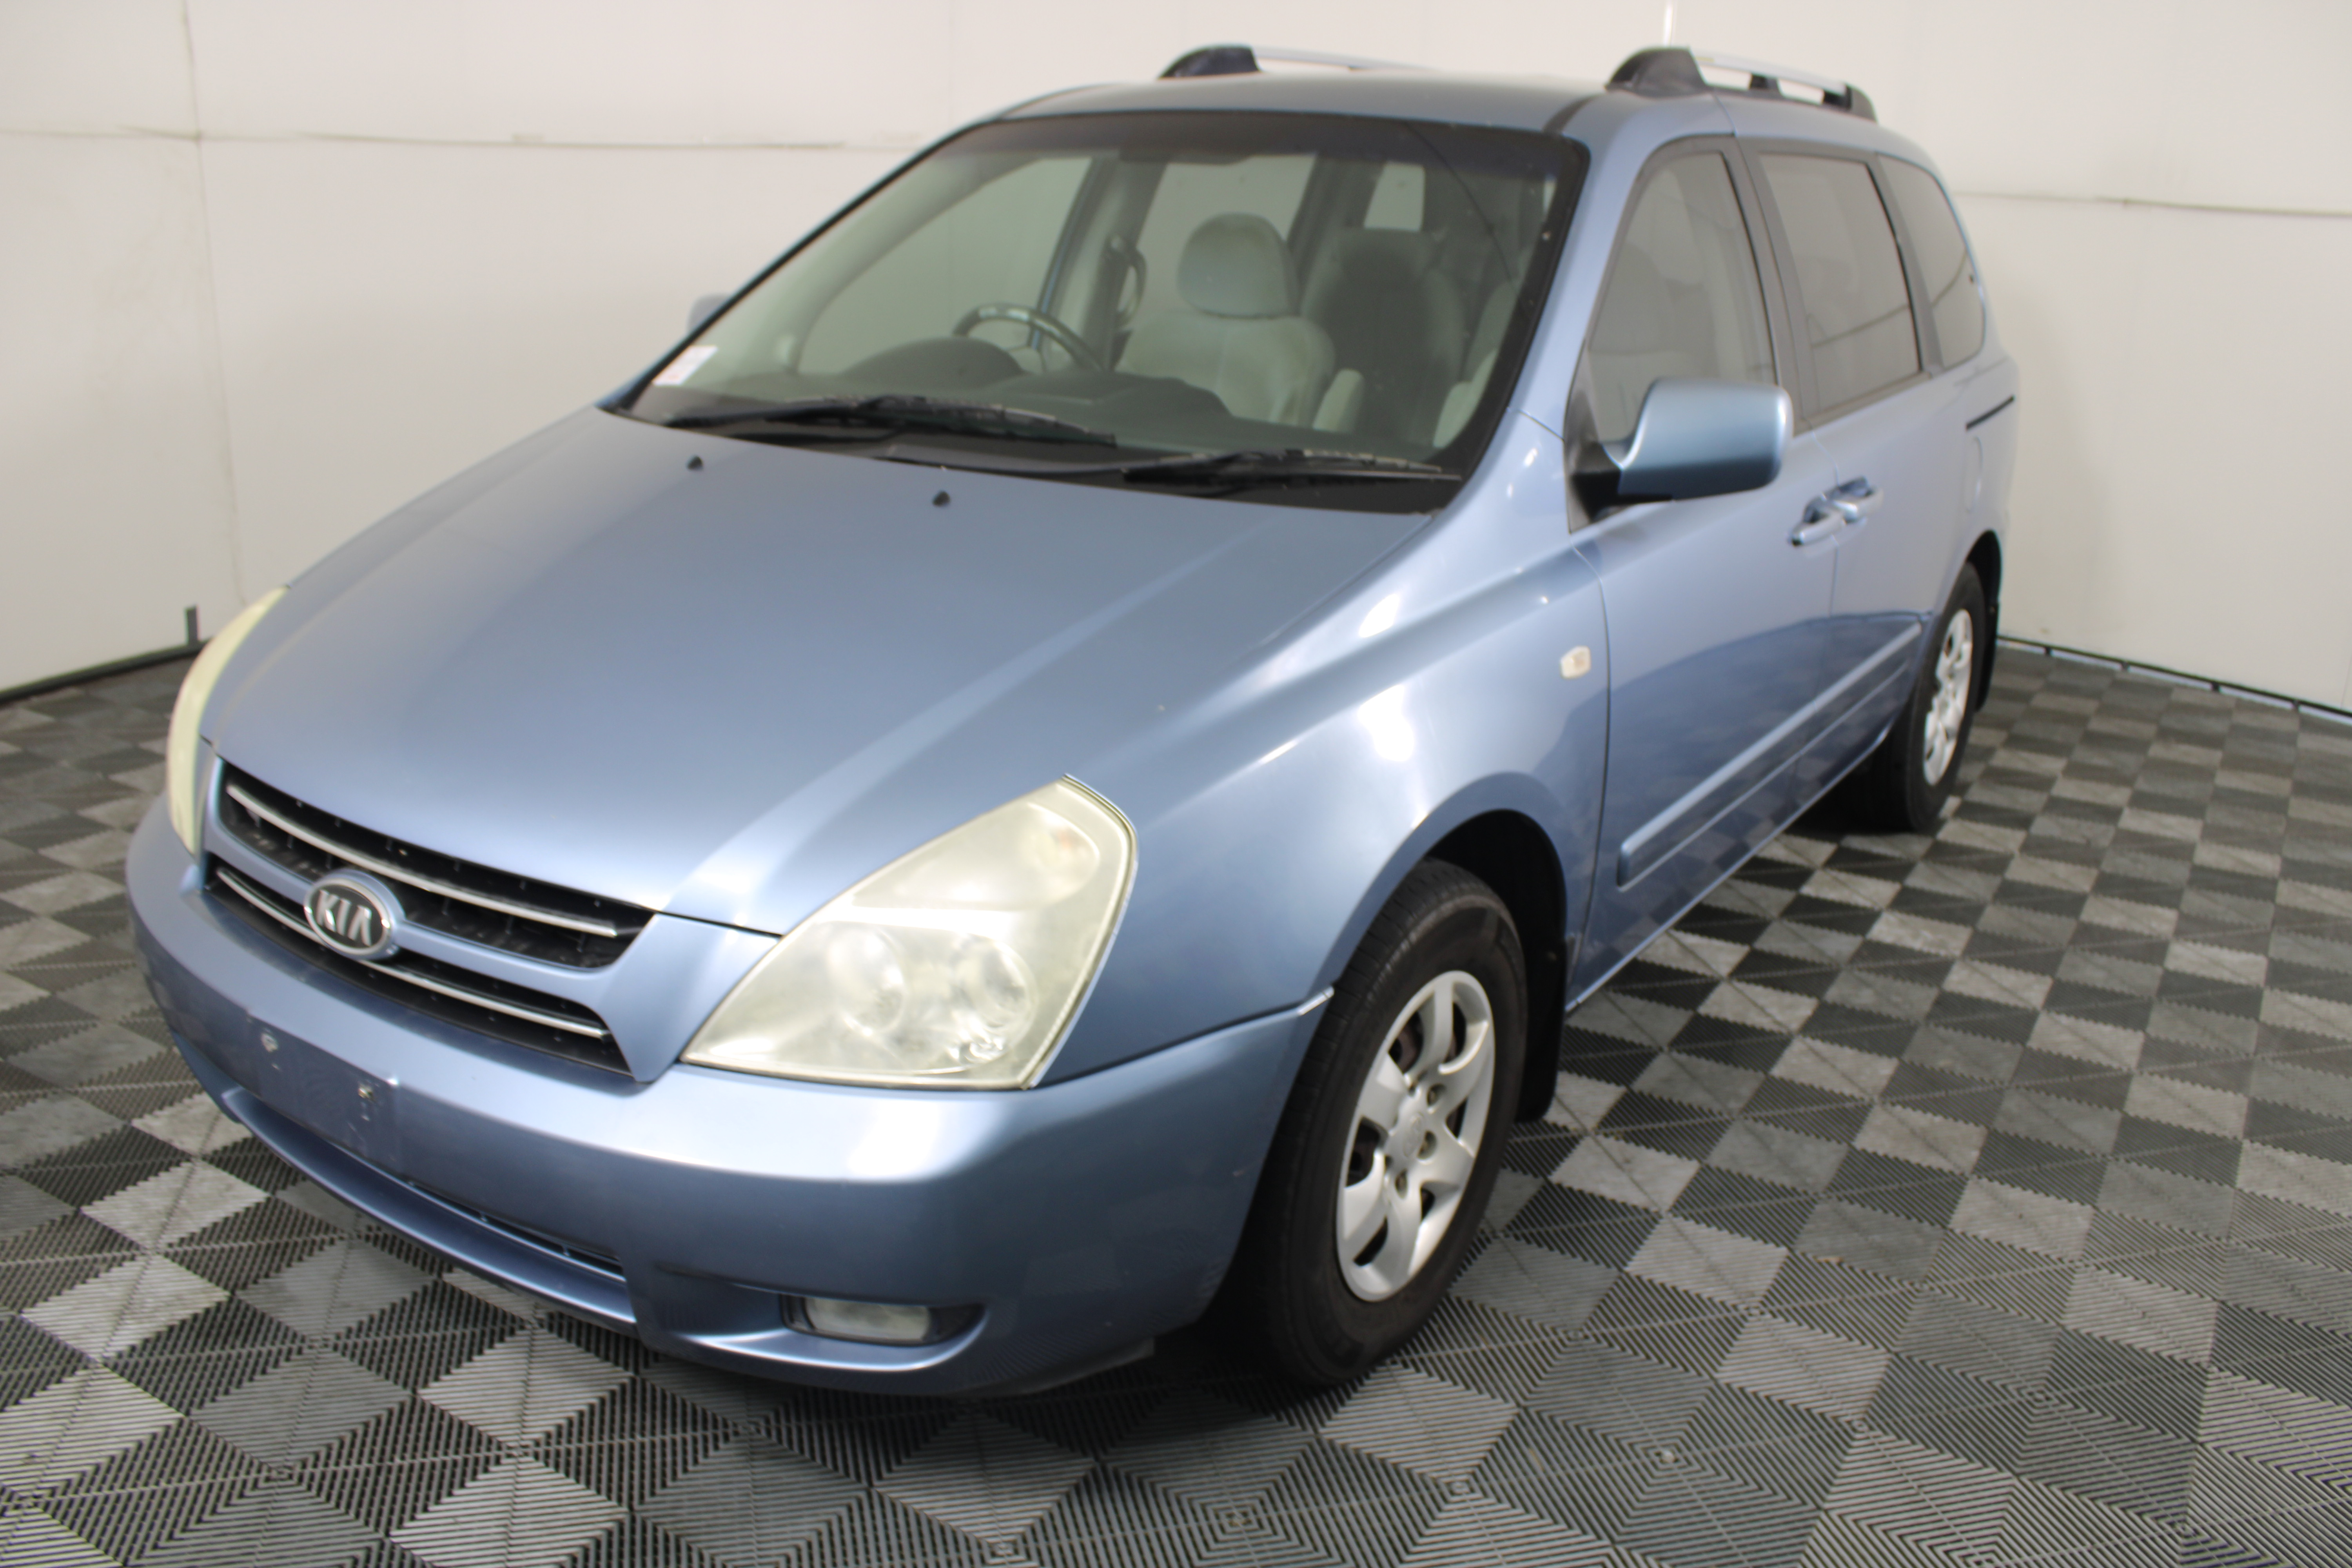 2006 Kia Carnival EX VQ Automatic 8 Seats People Mover